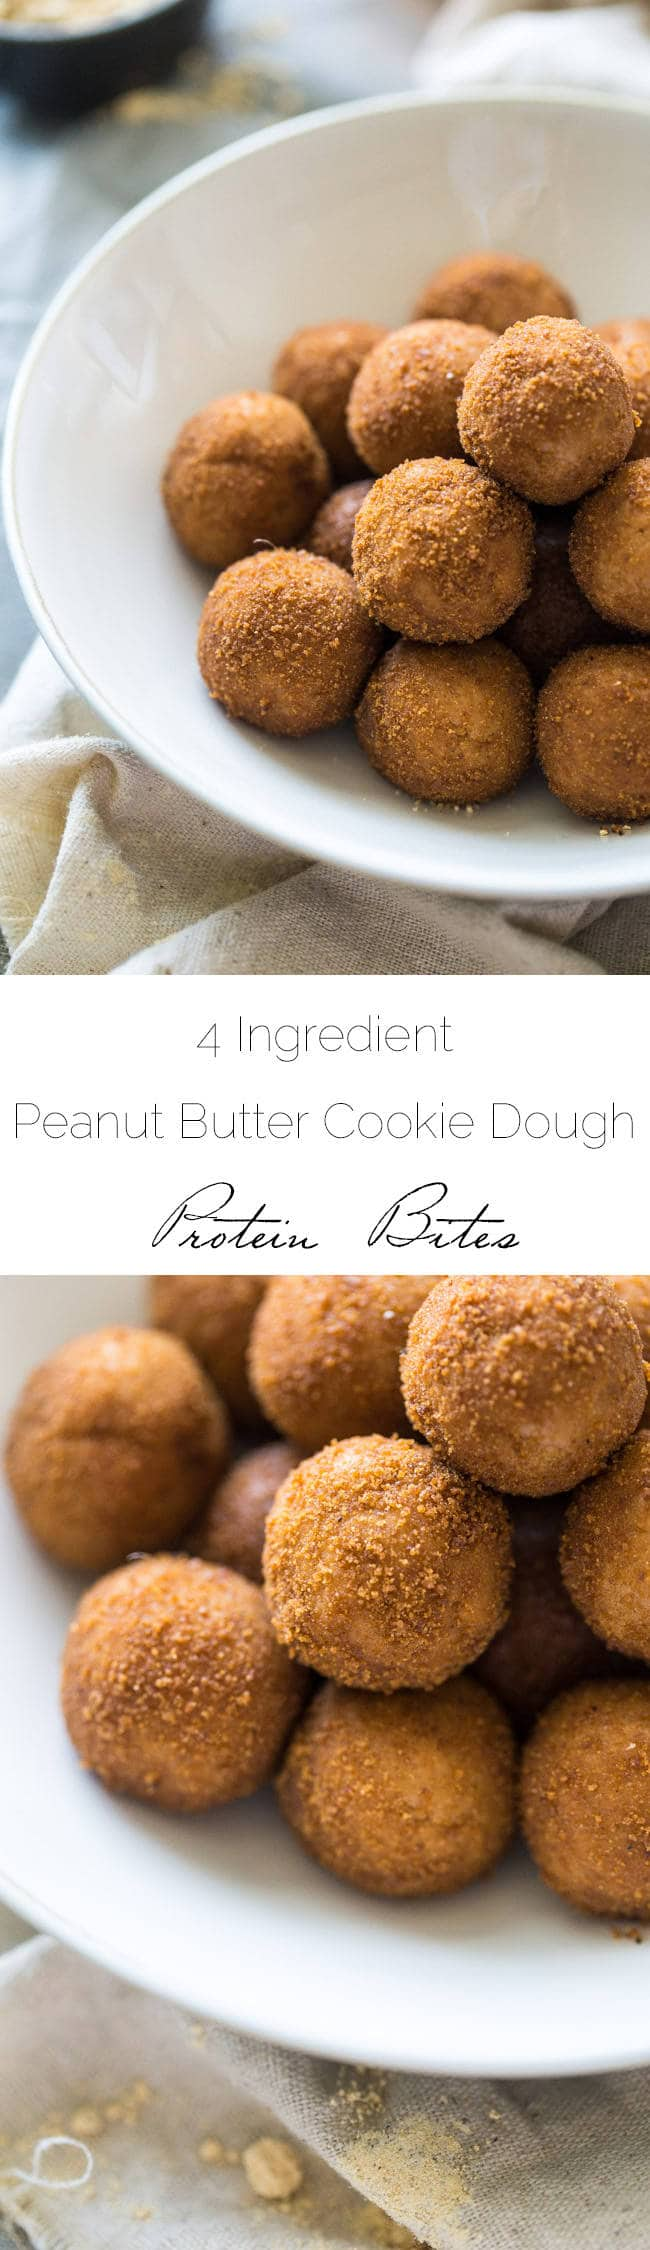 Healthy Peanut Butter Cookie Protein Bites - Only 4 ingredients, ready in 10 minutes and protein packed, gluten free AND naturally sweetened! You NEED to try them! | Foodfaithfitness.com | @FoodFaithFit